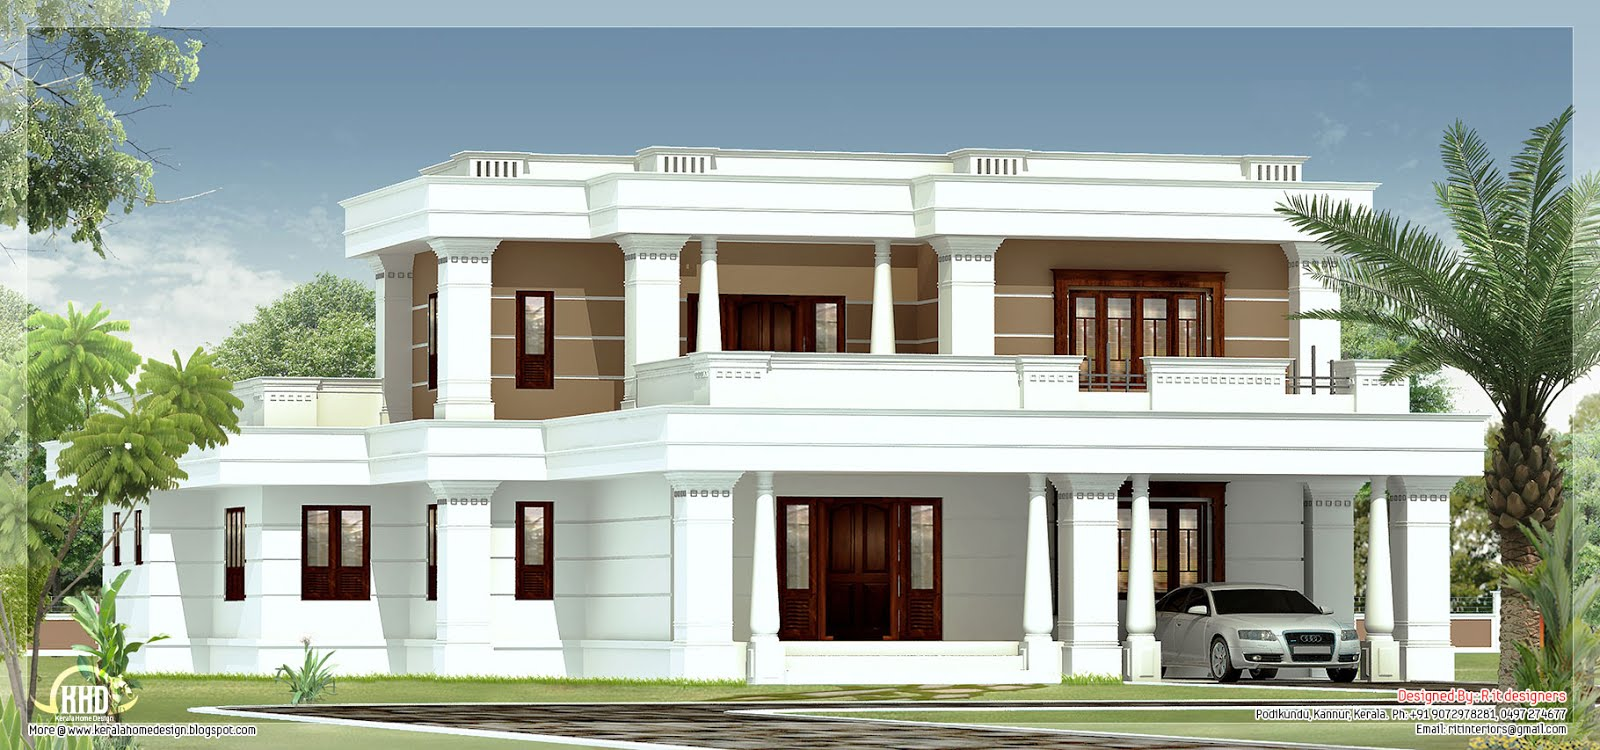 4 bedroom flat roof villa house design plans for 4 bedroom villa plans